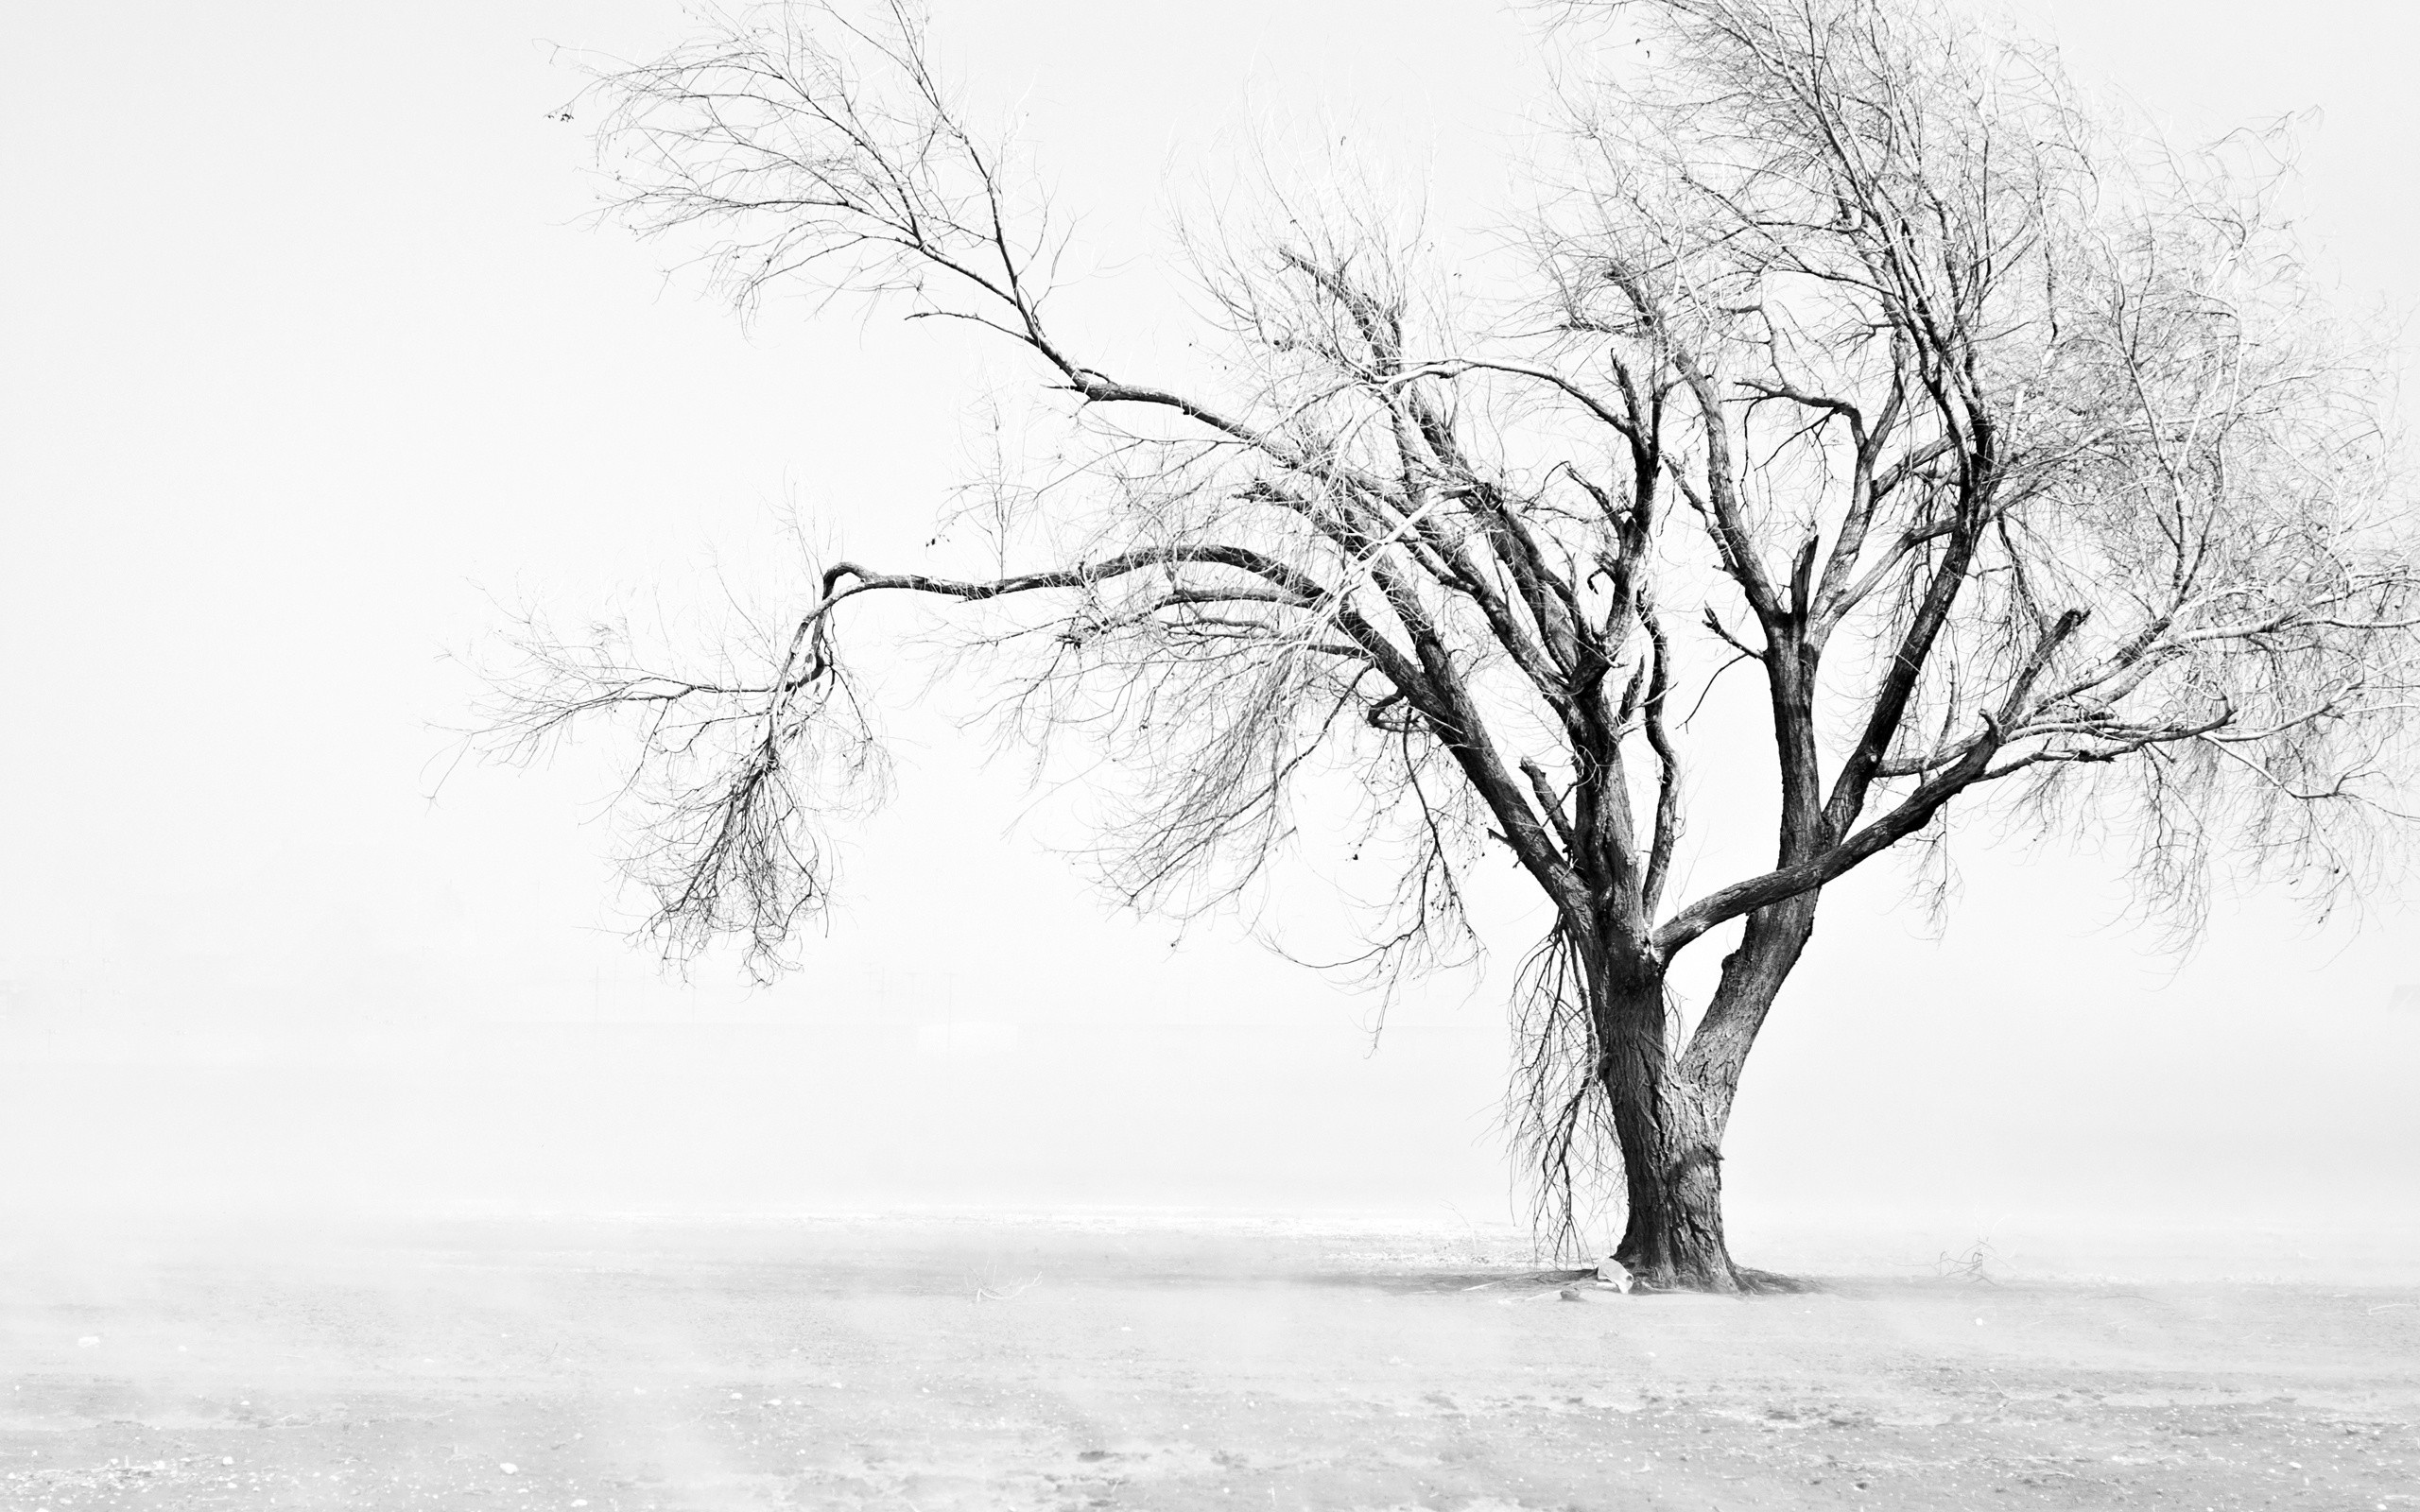 Free Download Tree Wallpaper Black And White 2560x1600 For Your